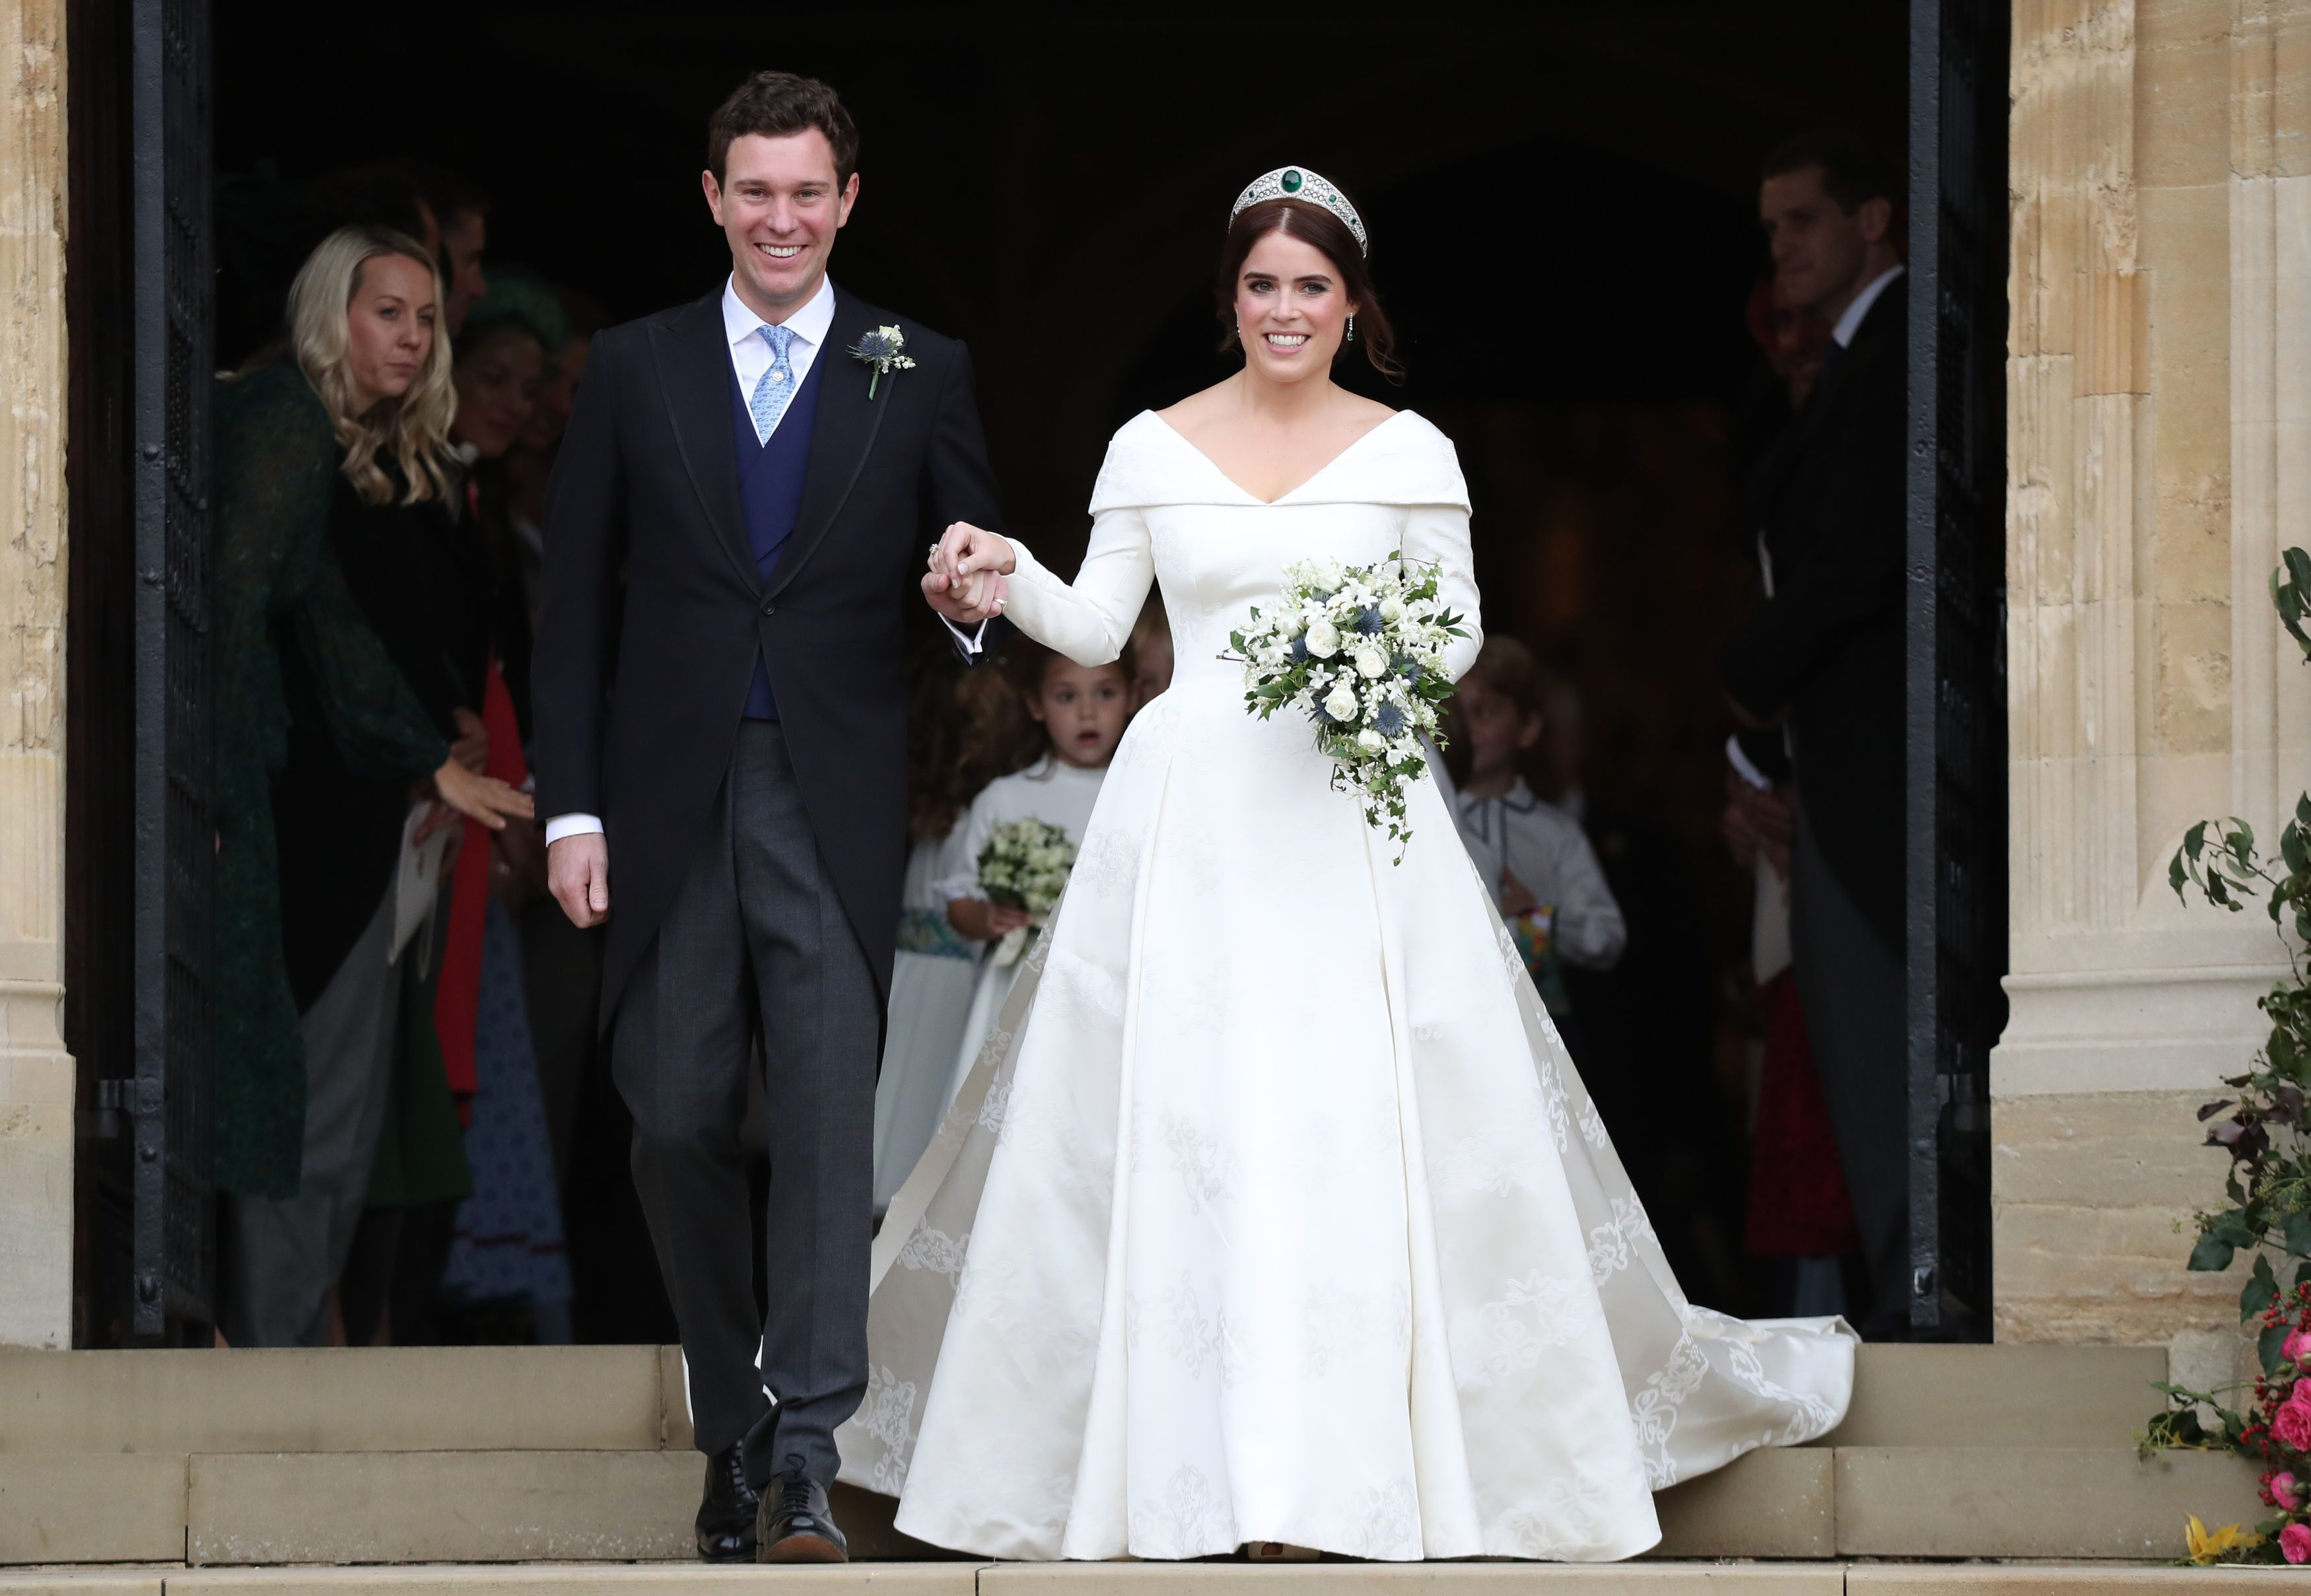 Princess Eugenie of York and her husband Jack Brooksbank during their wedding at St. George's Chapel on October 12, 2018 in Windsor, England.   Photo: Getty Images